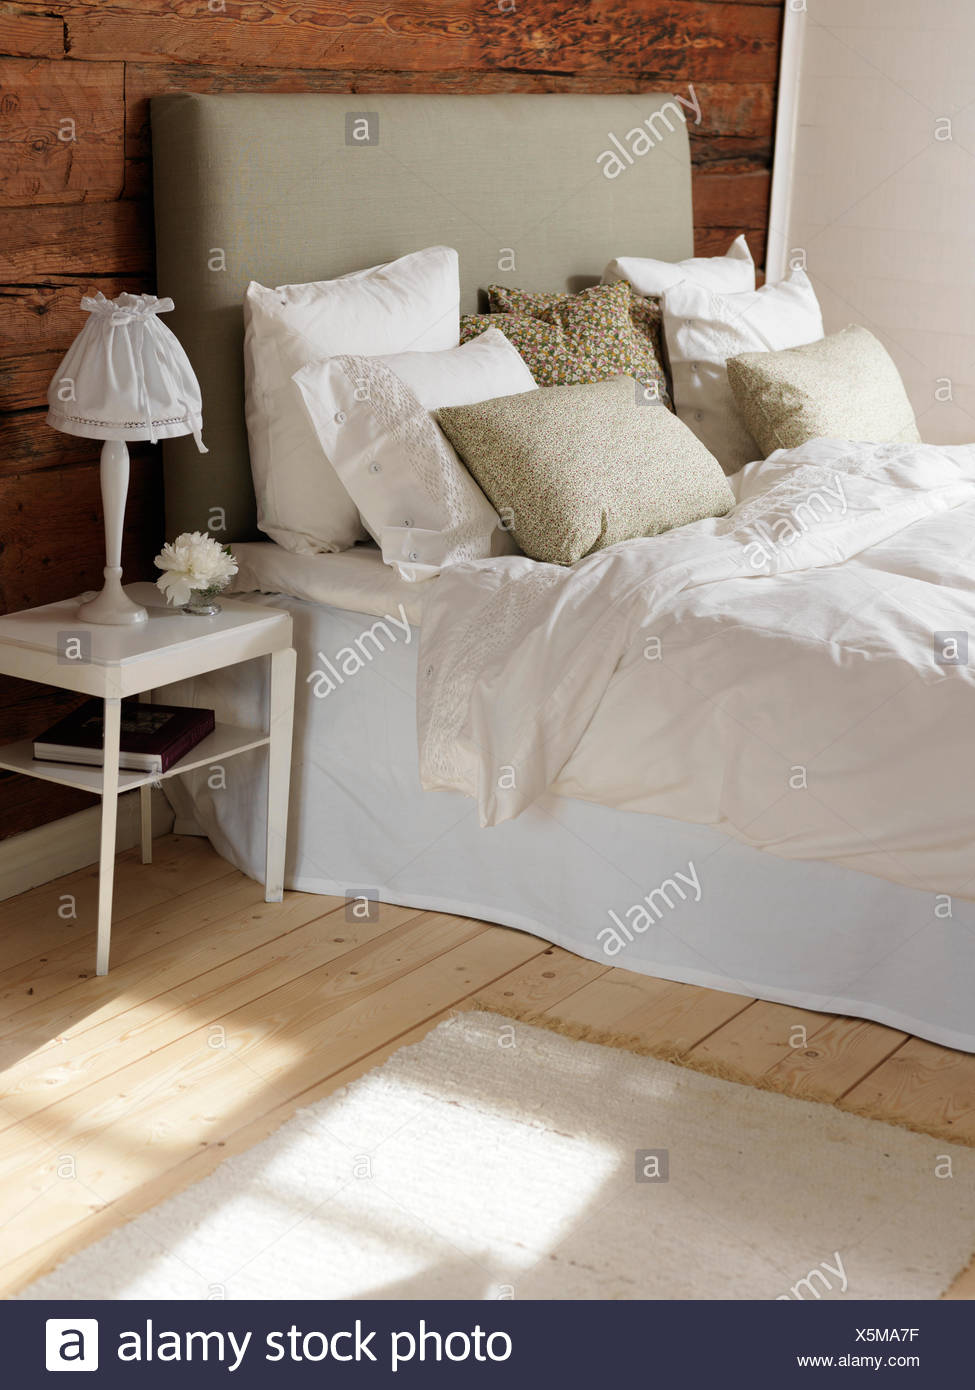 Sweden, Bedroom with wood and white color theme - Stock Image